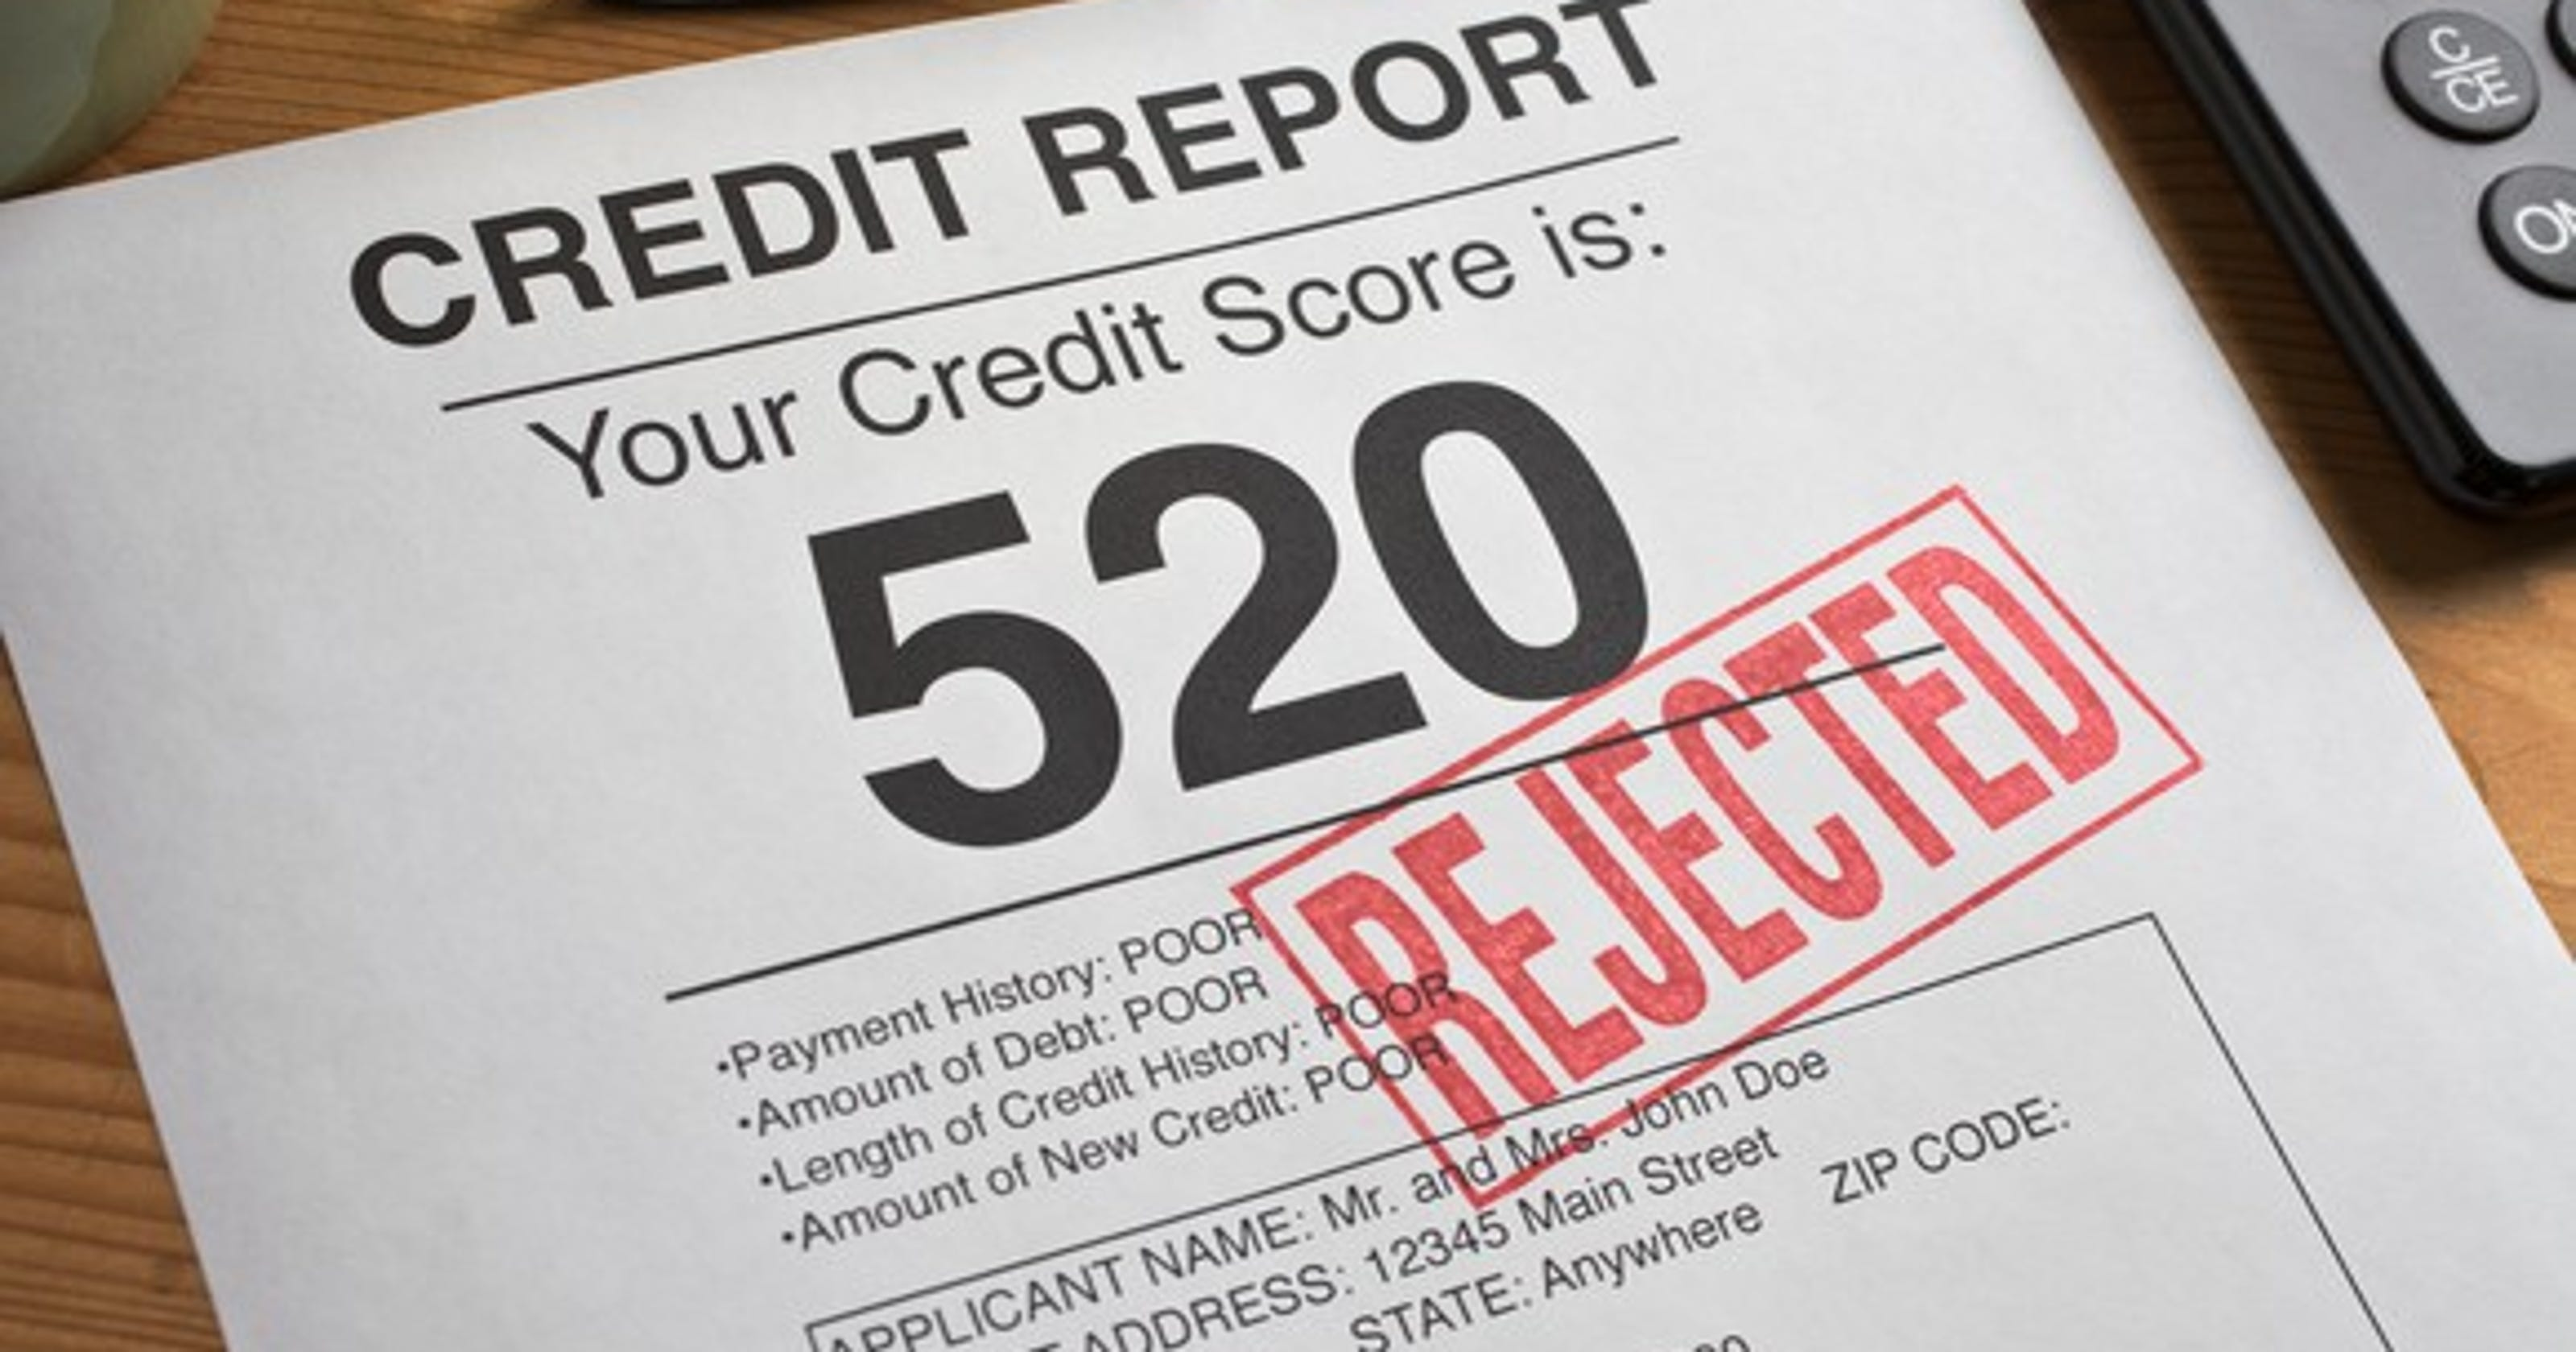 Credit move that can bump up your credit score fast